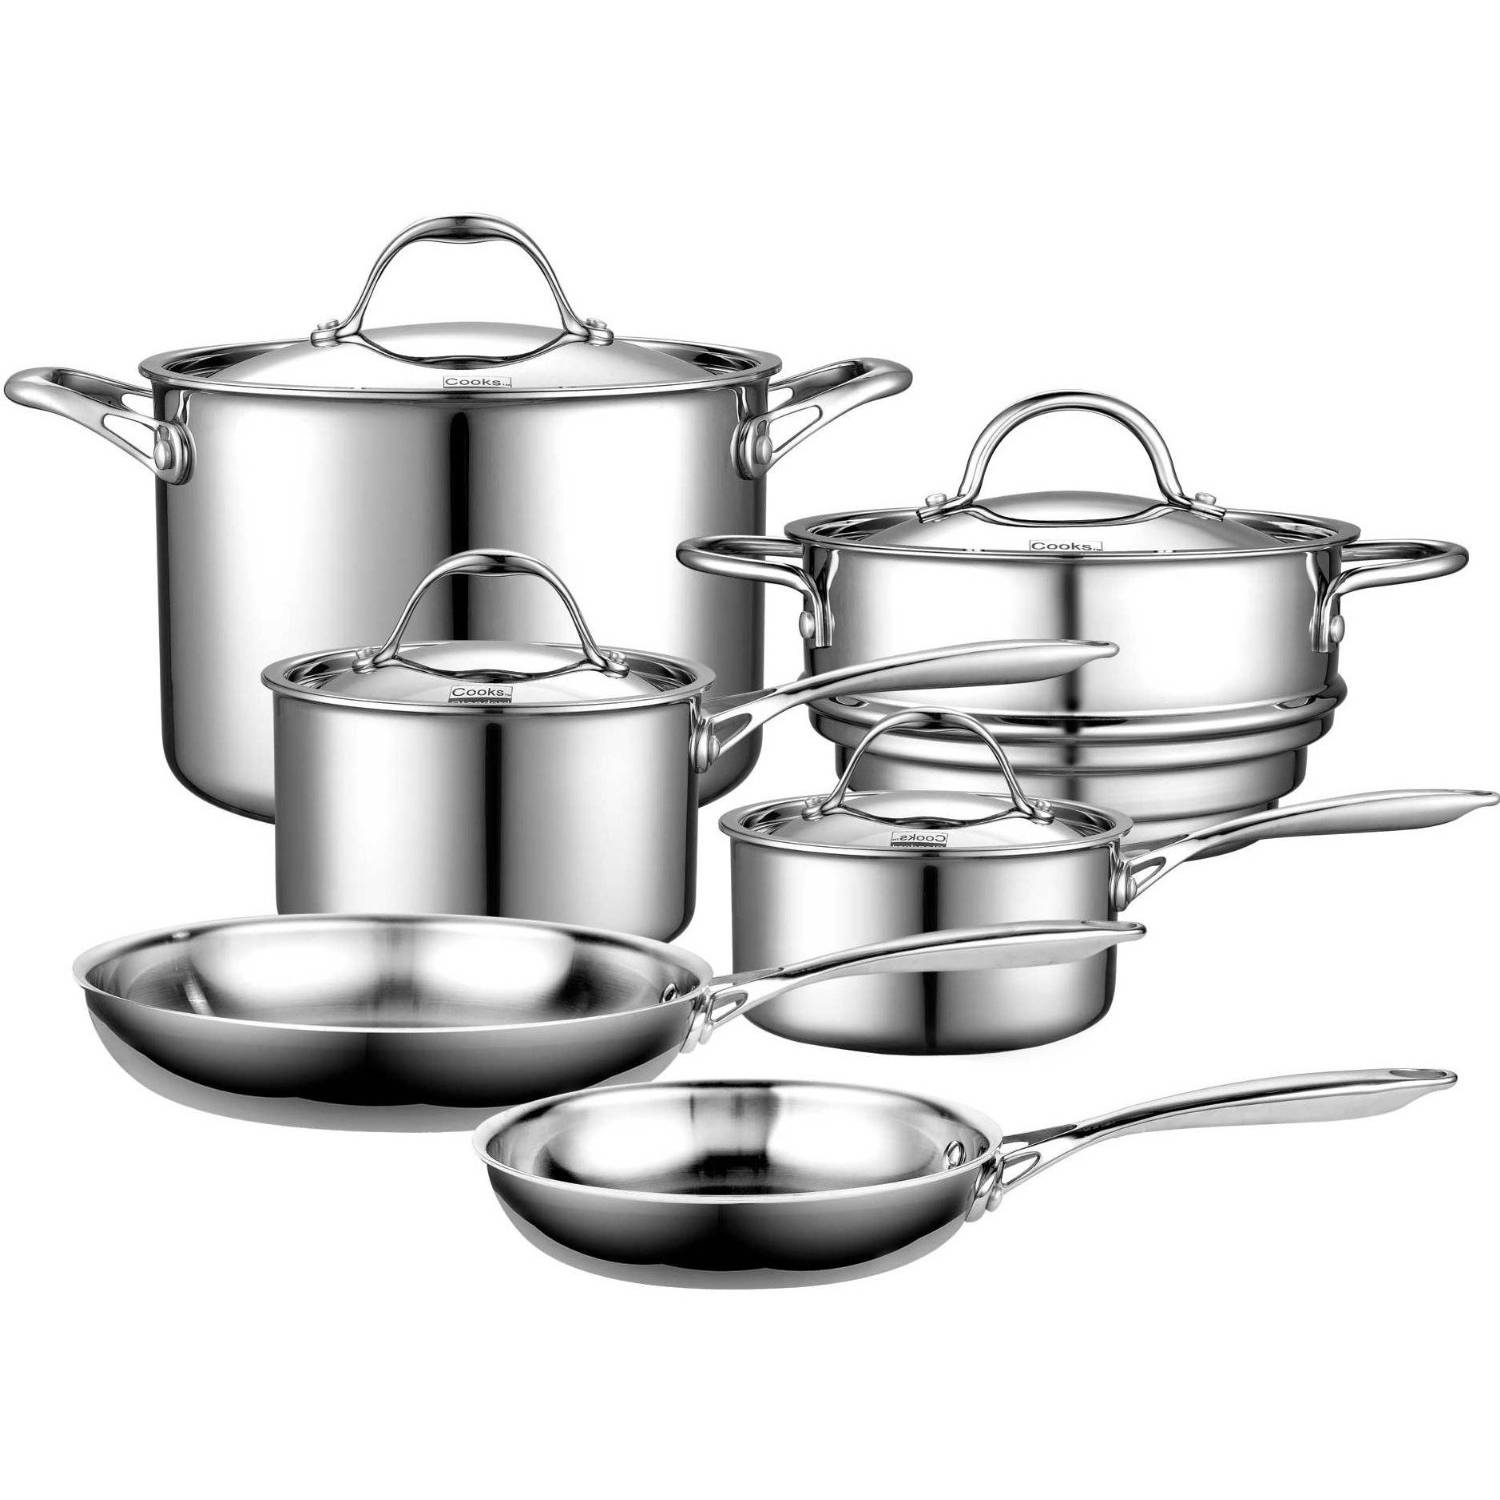 Cooks Standard 10-Piece Cookware Set Multi-Ply Clad Stainless-Steel